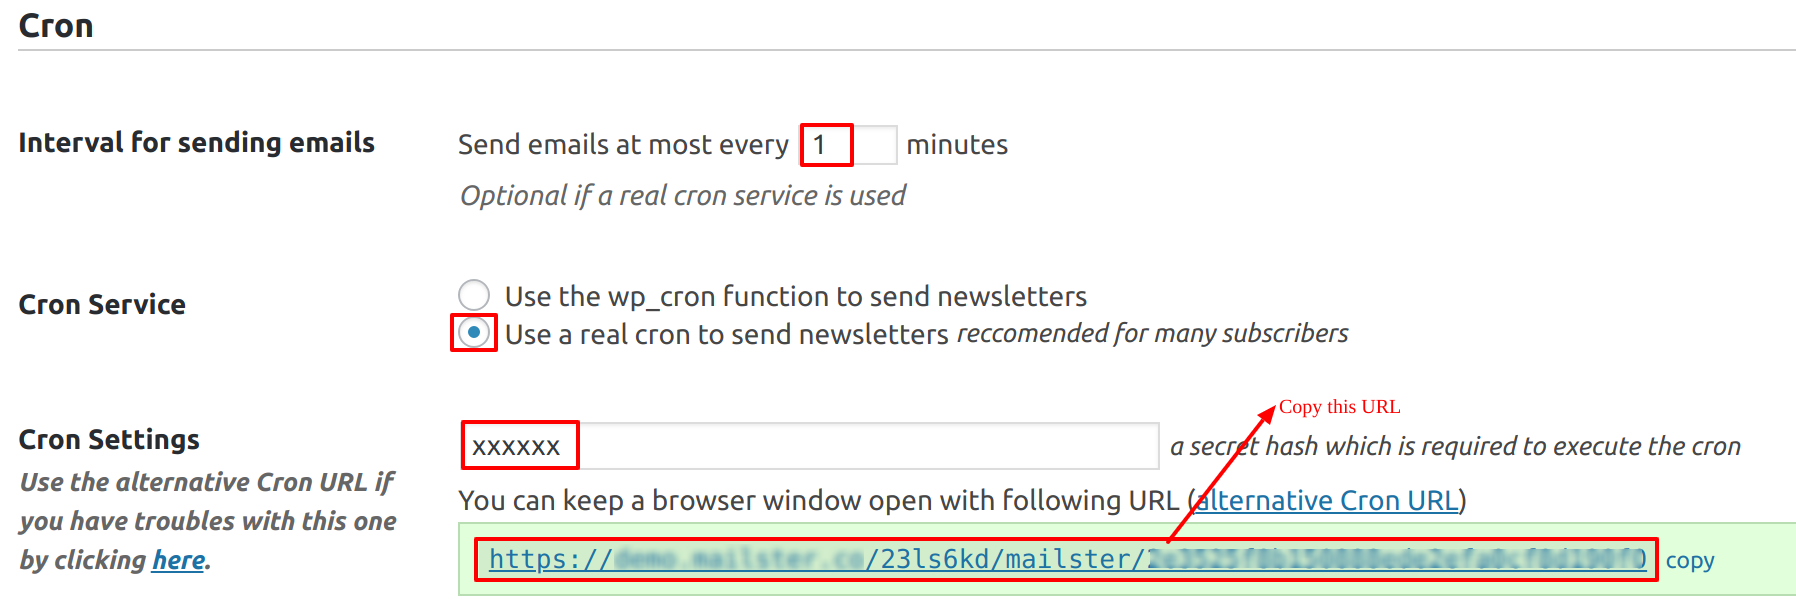 How to set up cron job for Mailster - Email Newsletter